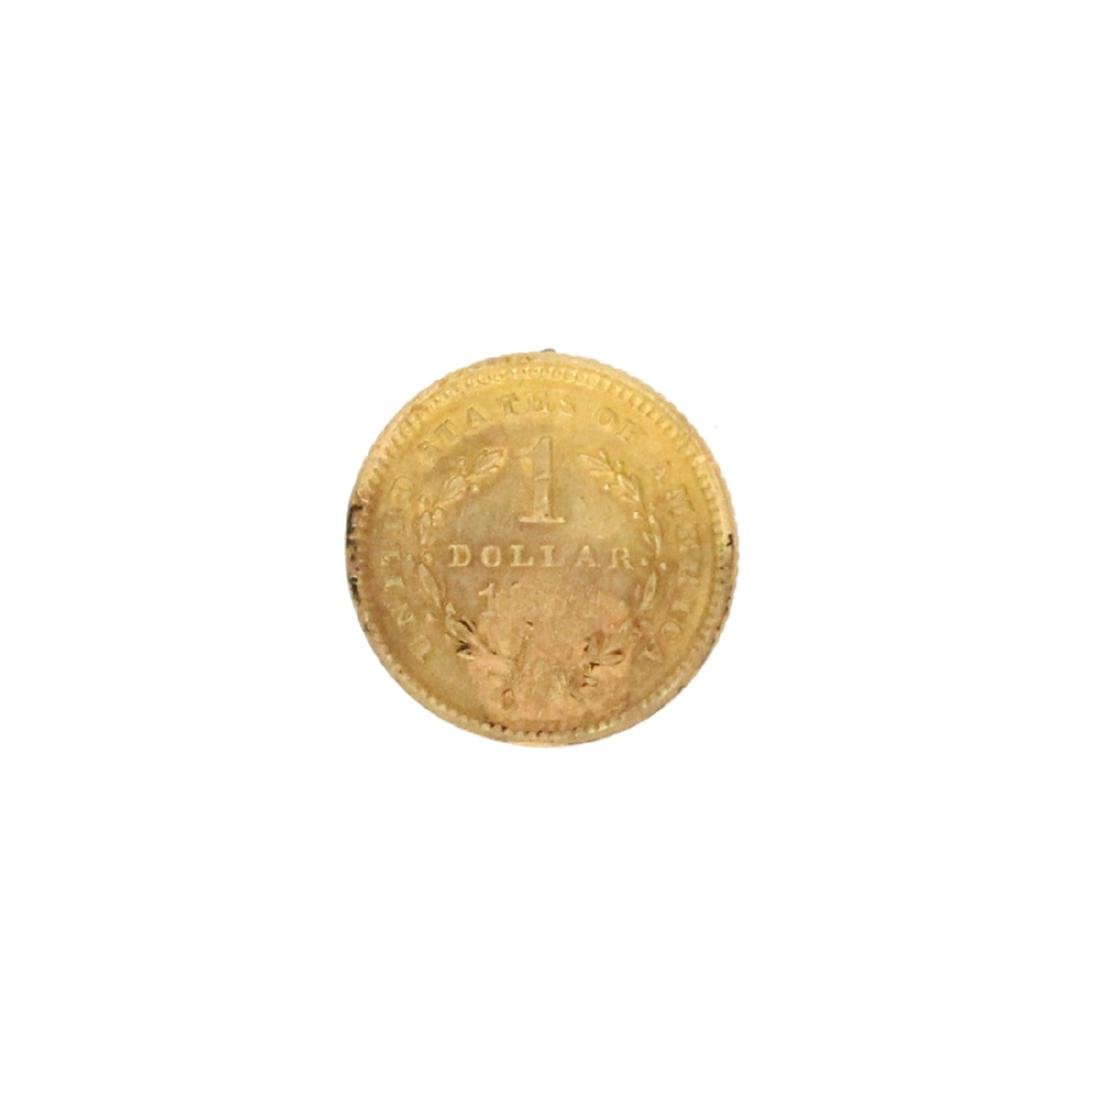 Extremely Rare 1851 $1  U.S. Liberty Head Gold Coin - 2